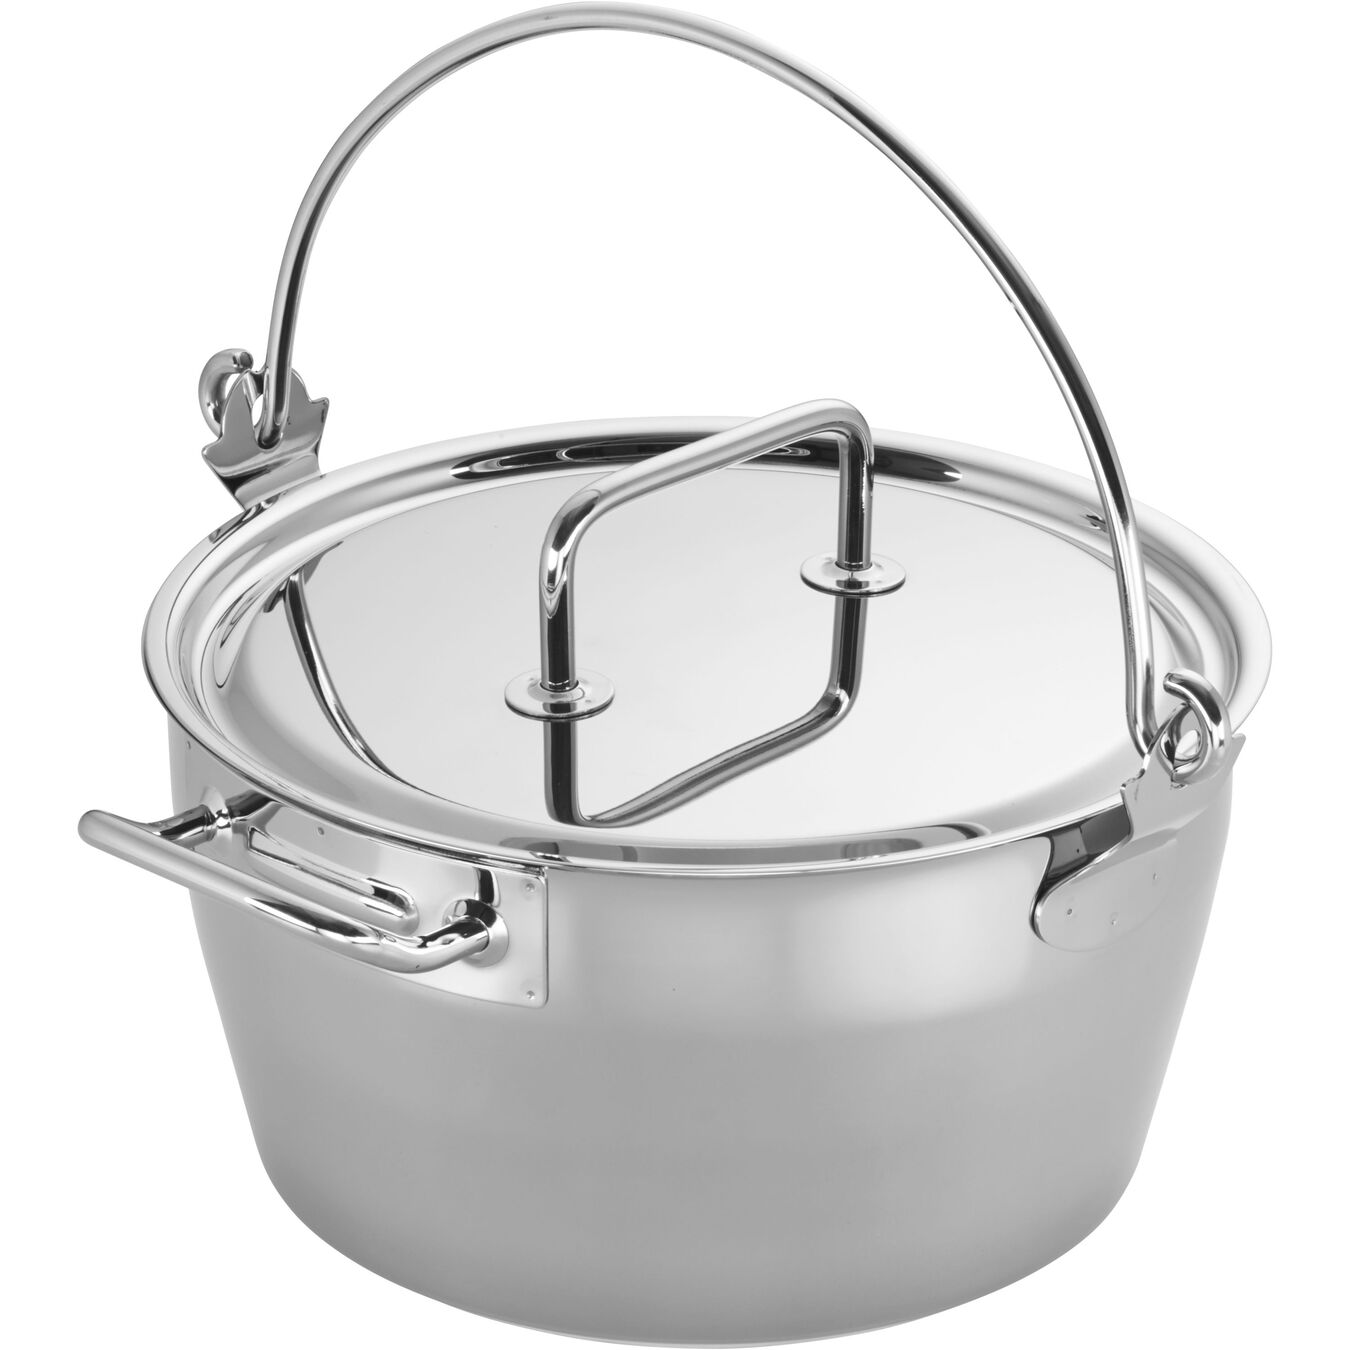 10.6-qt Stainless Steel Maslin Pan,,large 2